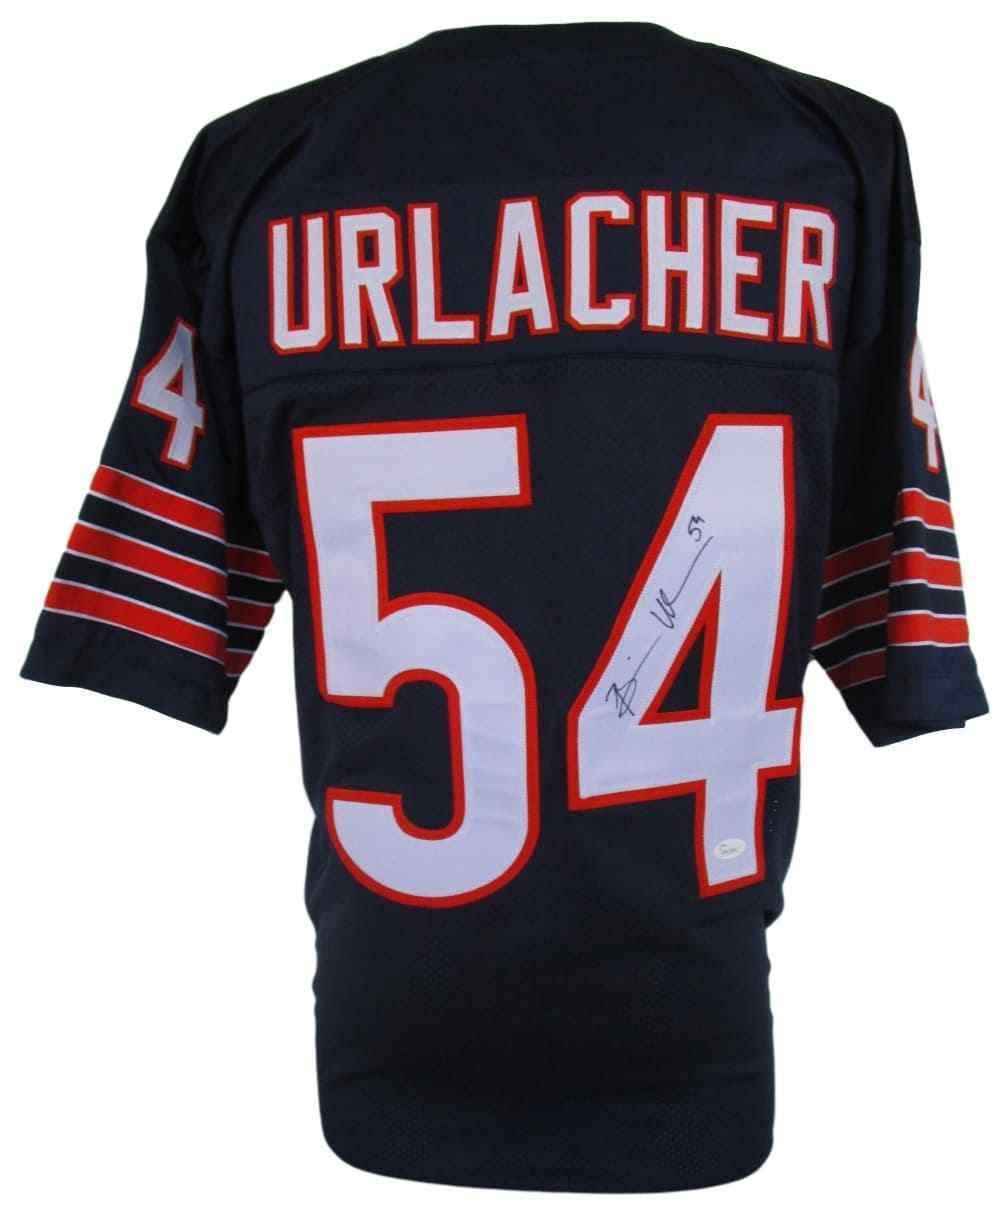 c6ddeb26b11 Amazon.com: Brian Urlacher Signed Jersey - Custom Navy Pro Style - JSA  Certified - Autographed NFL Jerseys: Sports Collectibles